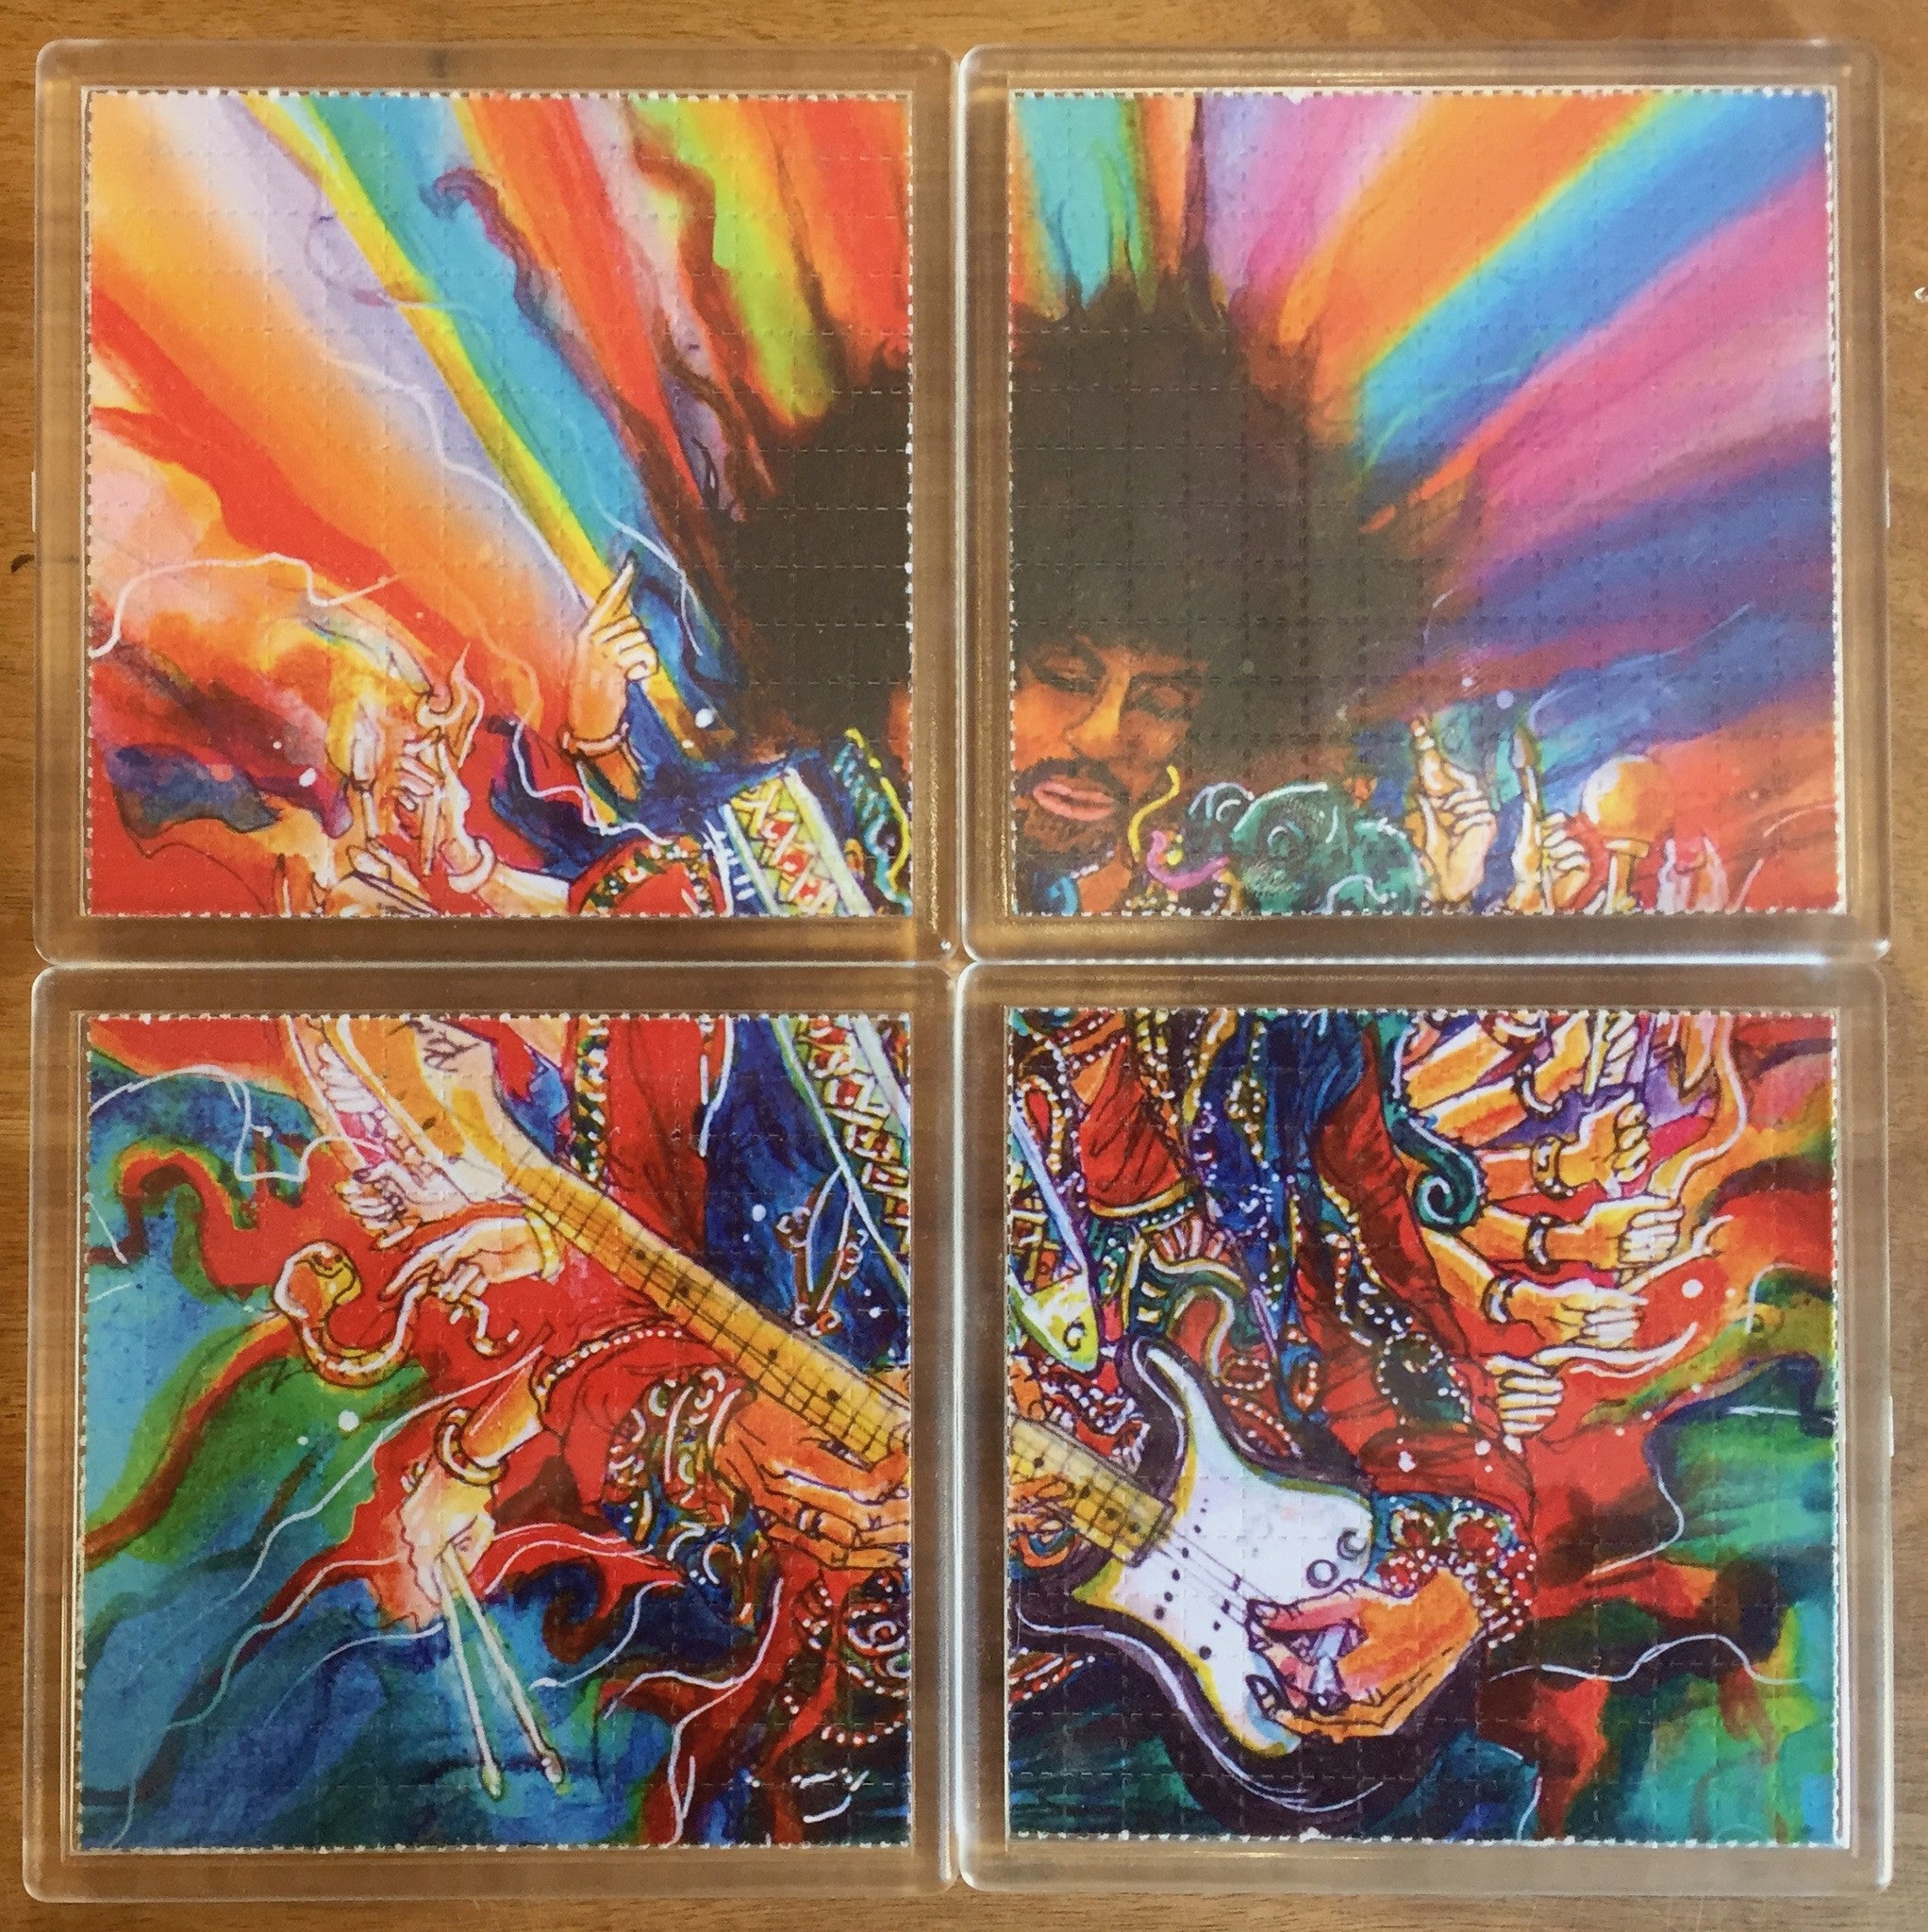 jimi hendrix psychedelic blotter art highly collectible